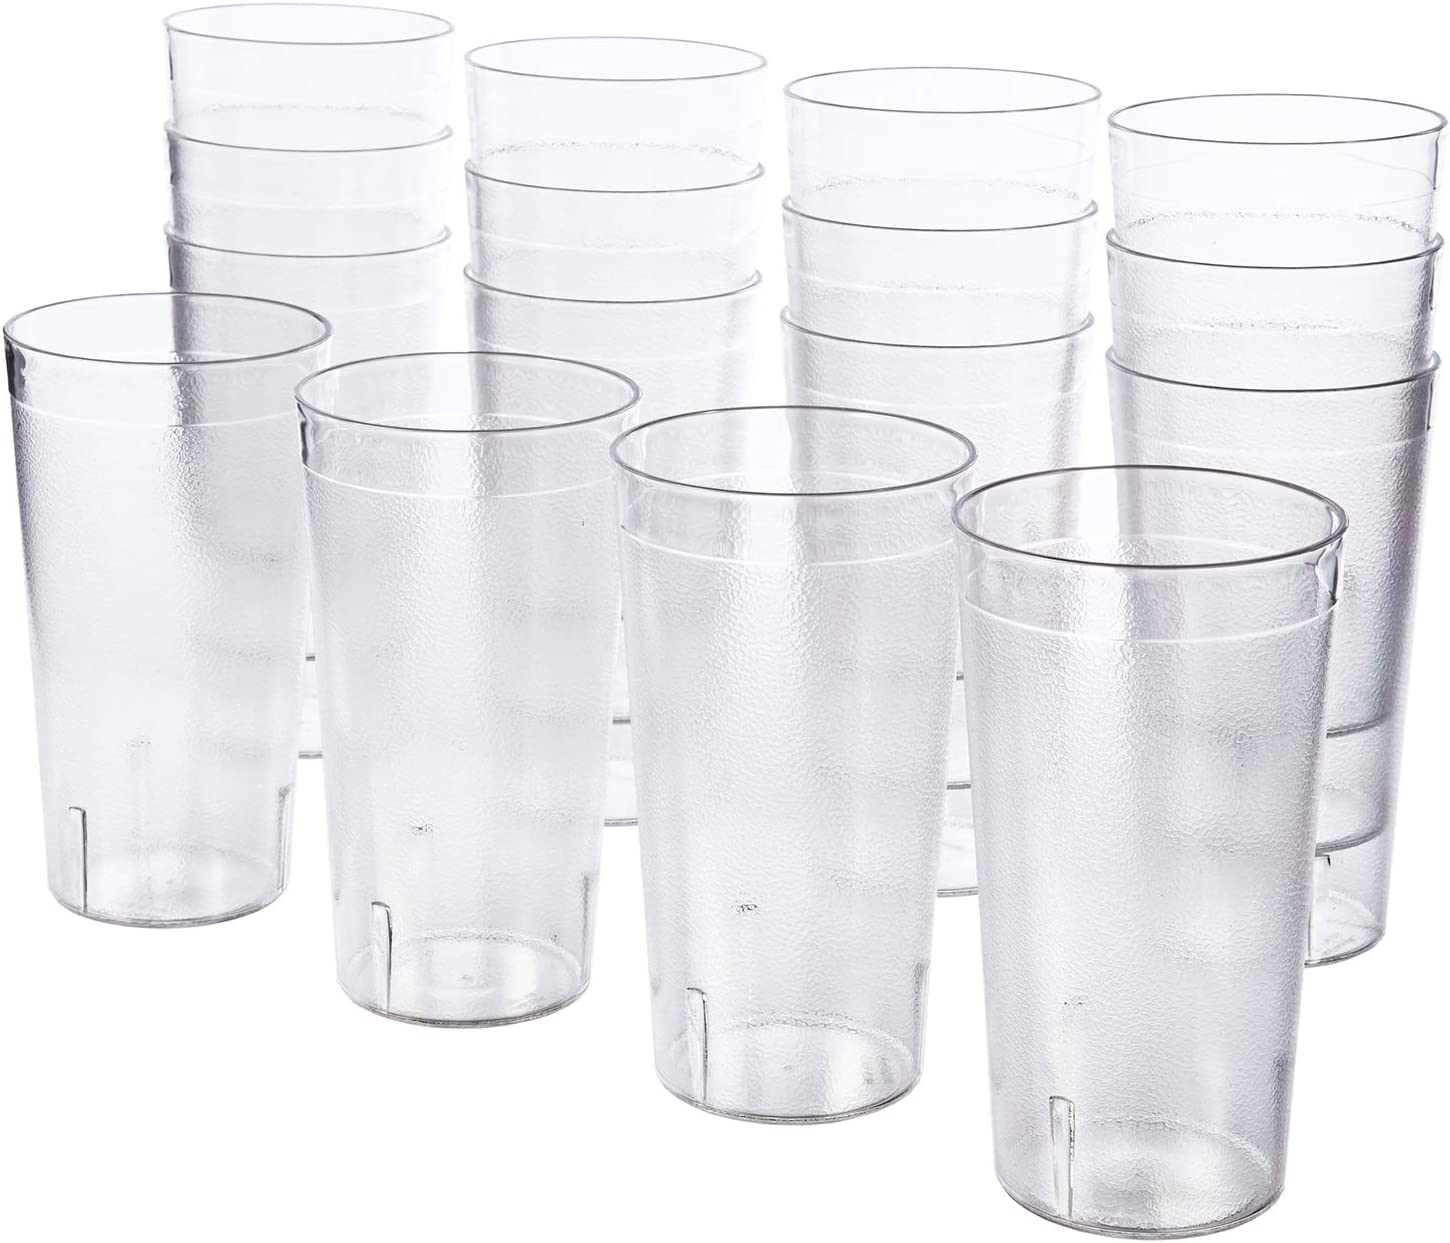 Cafe 20 Ounce Break Resistant Plastic Restaurant Style Beverage Tumblers Set Of 16 Clear Mixed Drinkware Sets